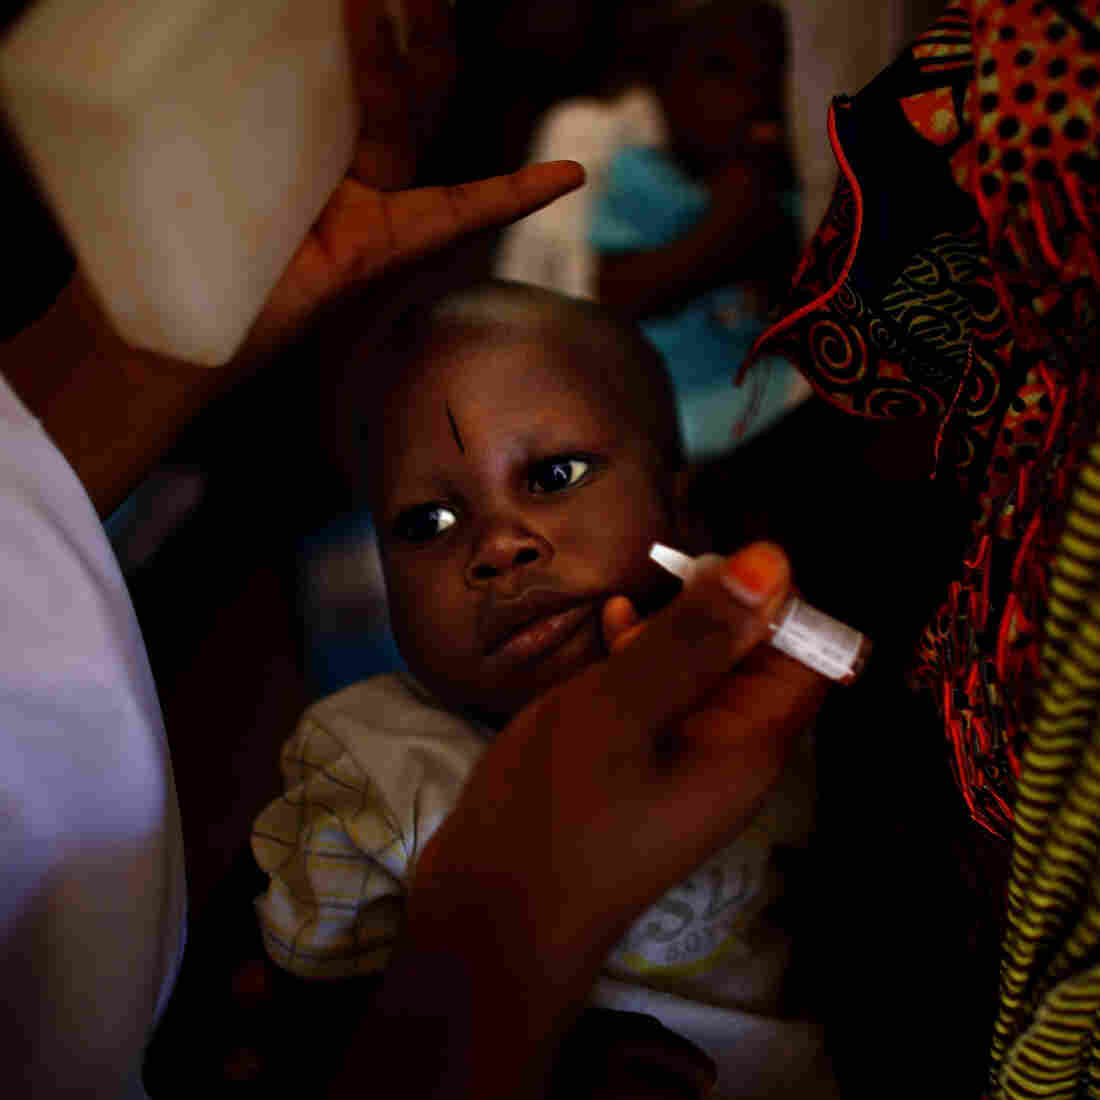 Polio Is Active In Only 3 Countries. Soon It Could Be Down To 2